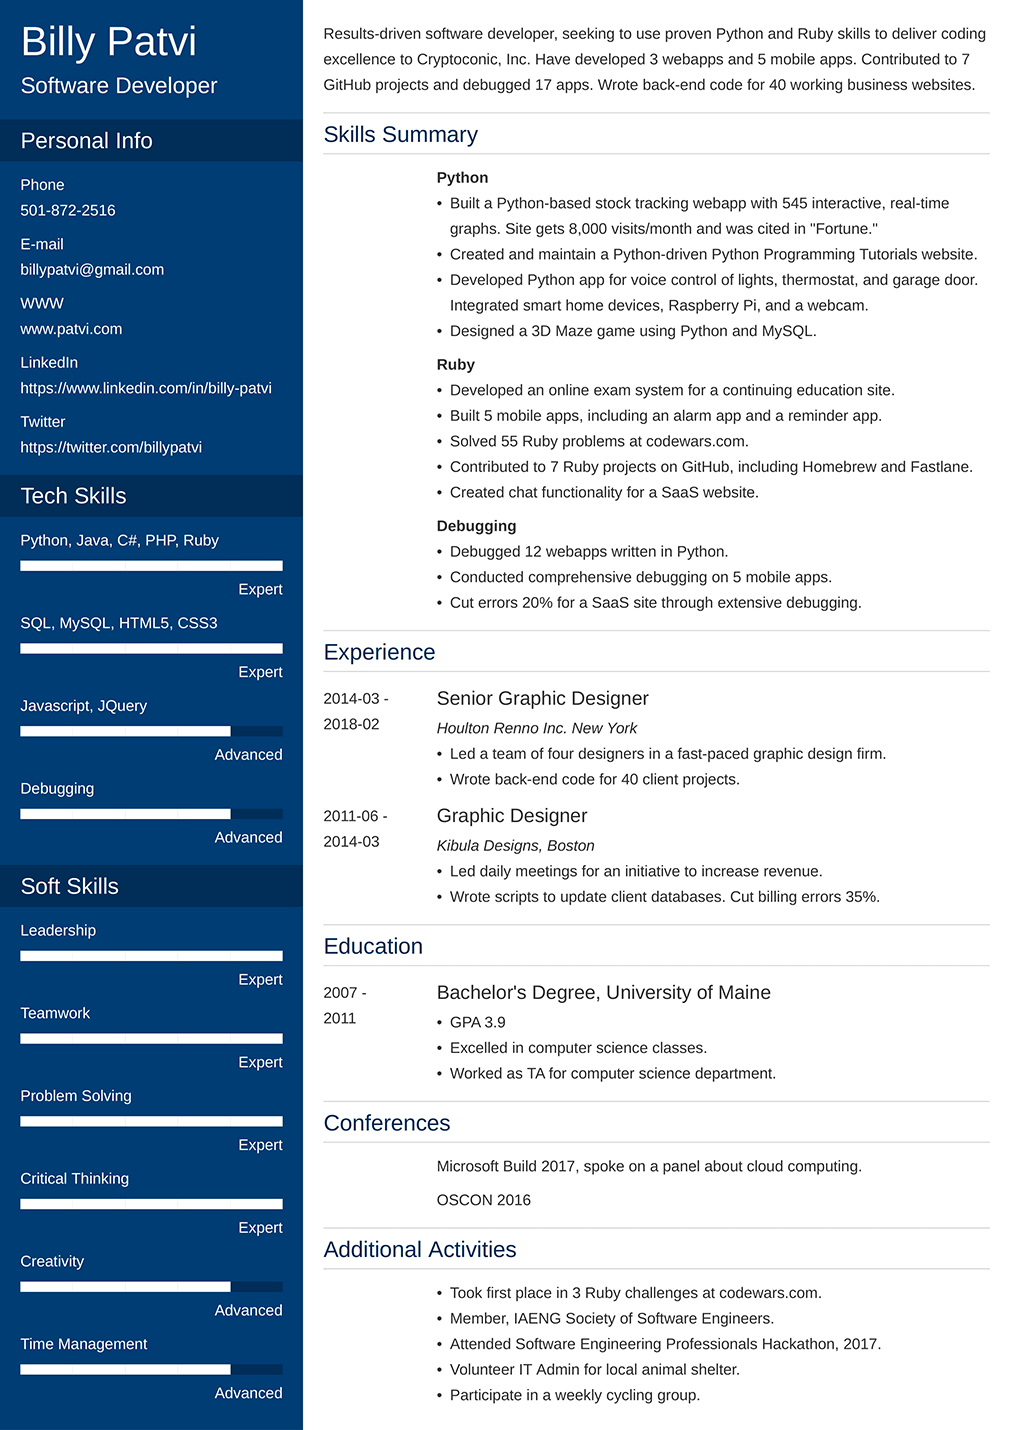 500+ Free Resume Examples & Sample Resumes for All Jobs